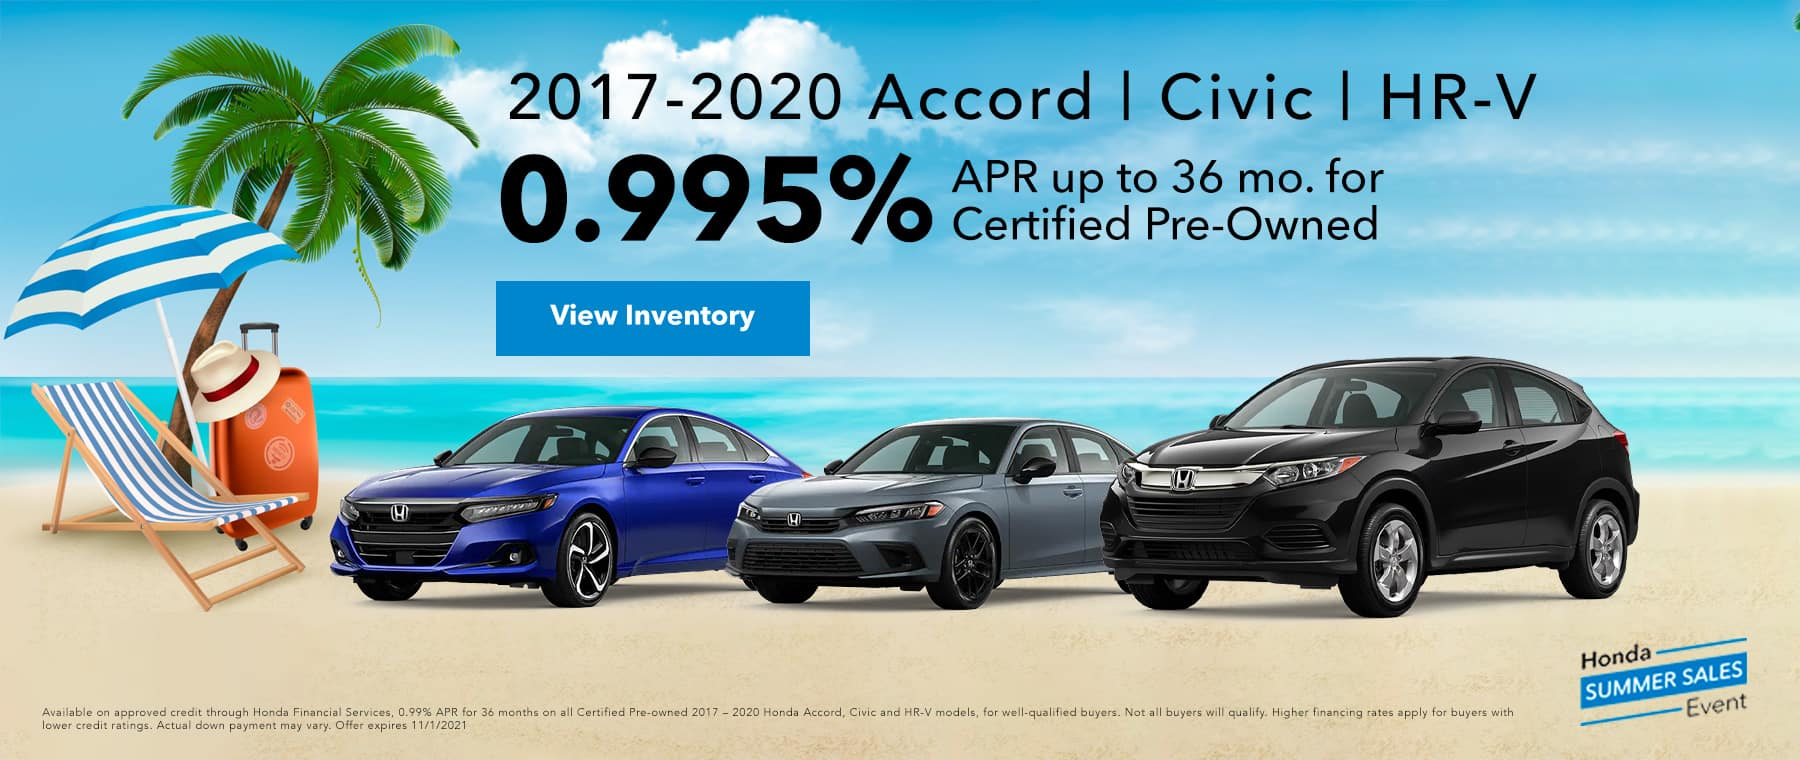 0.995 APR FINANCING UP TO 36 MONTHS FOR CERTIFIED PRE-OWNED- 2017-2020 ACCORD   CIVIC   HR-V